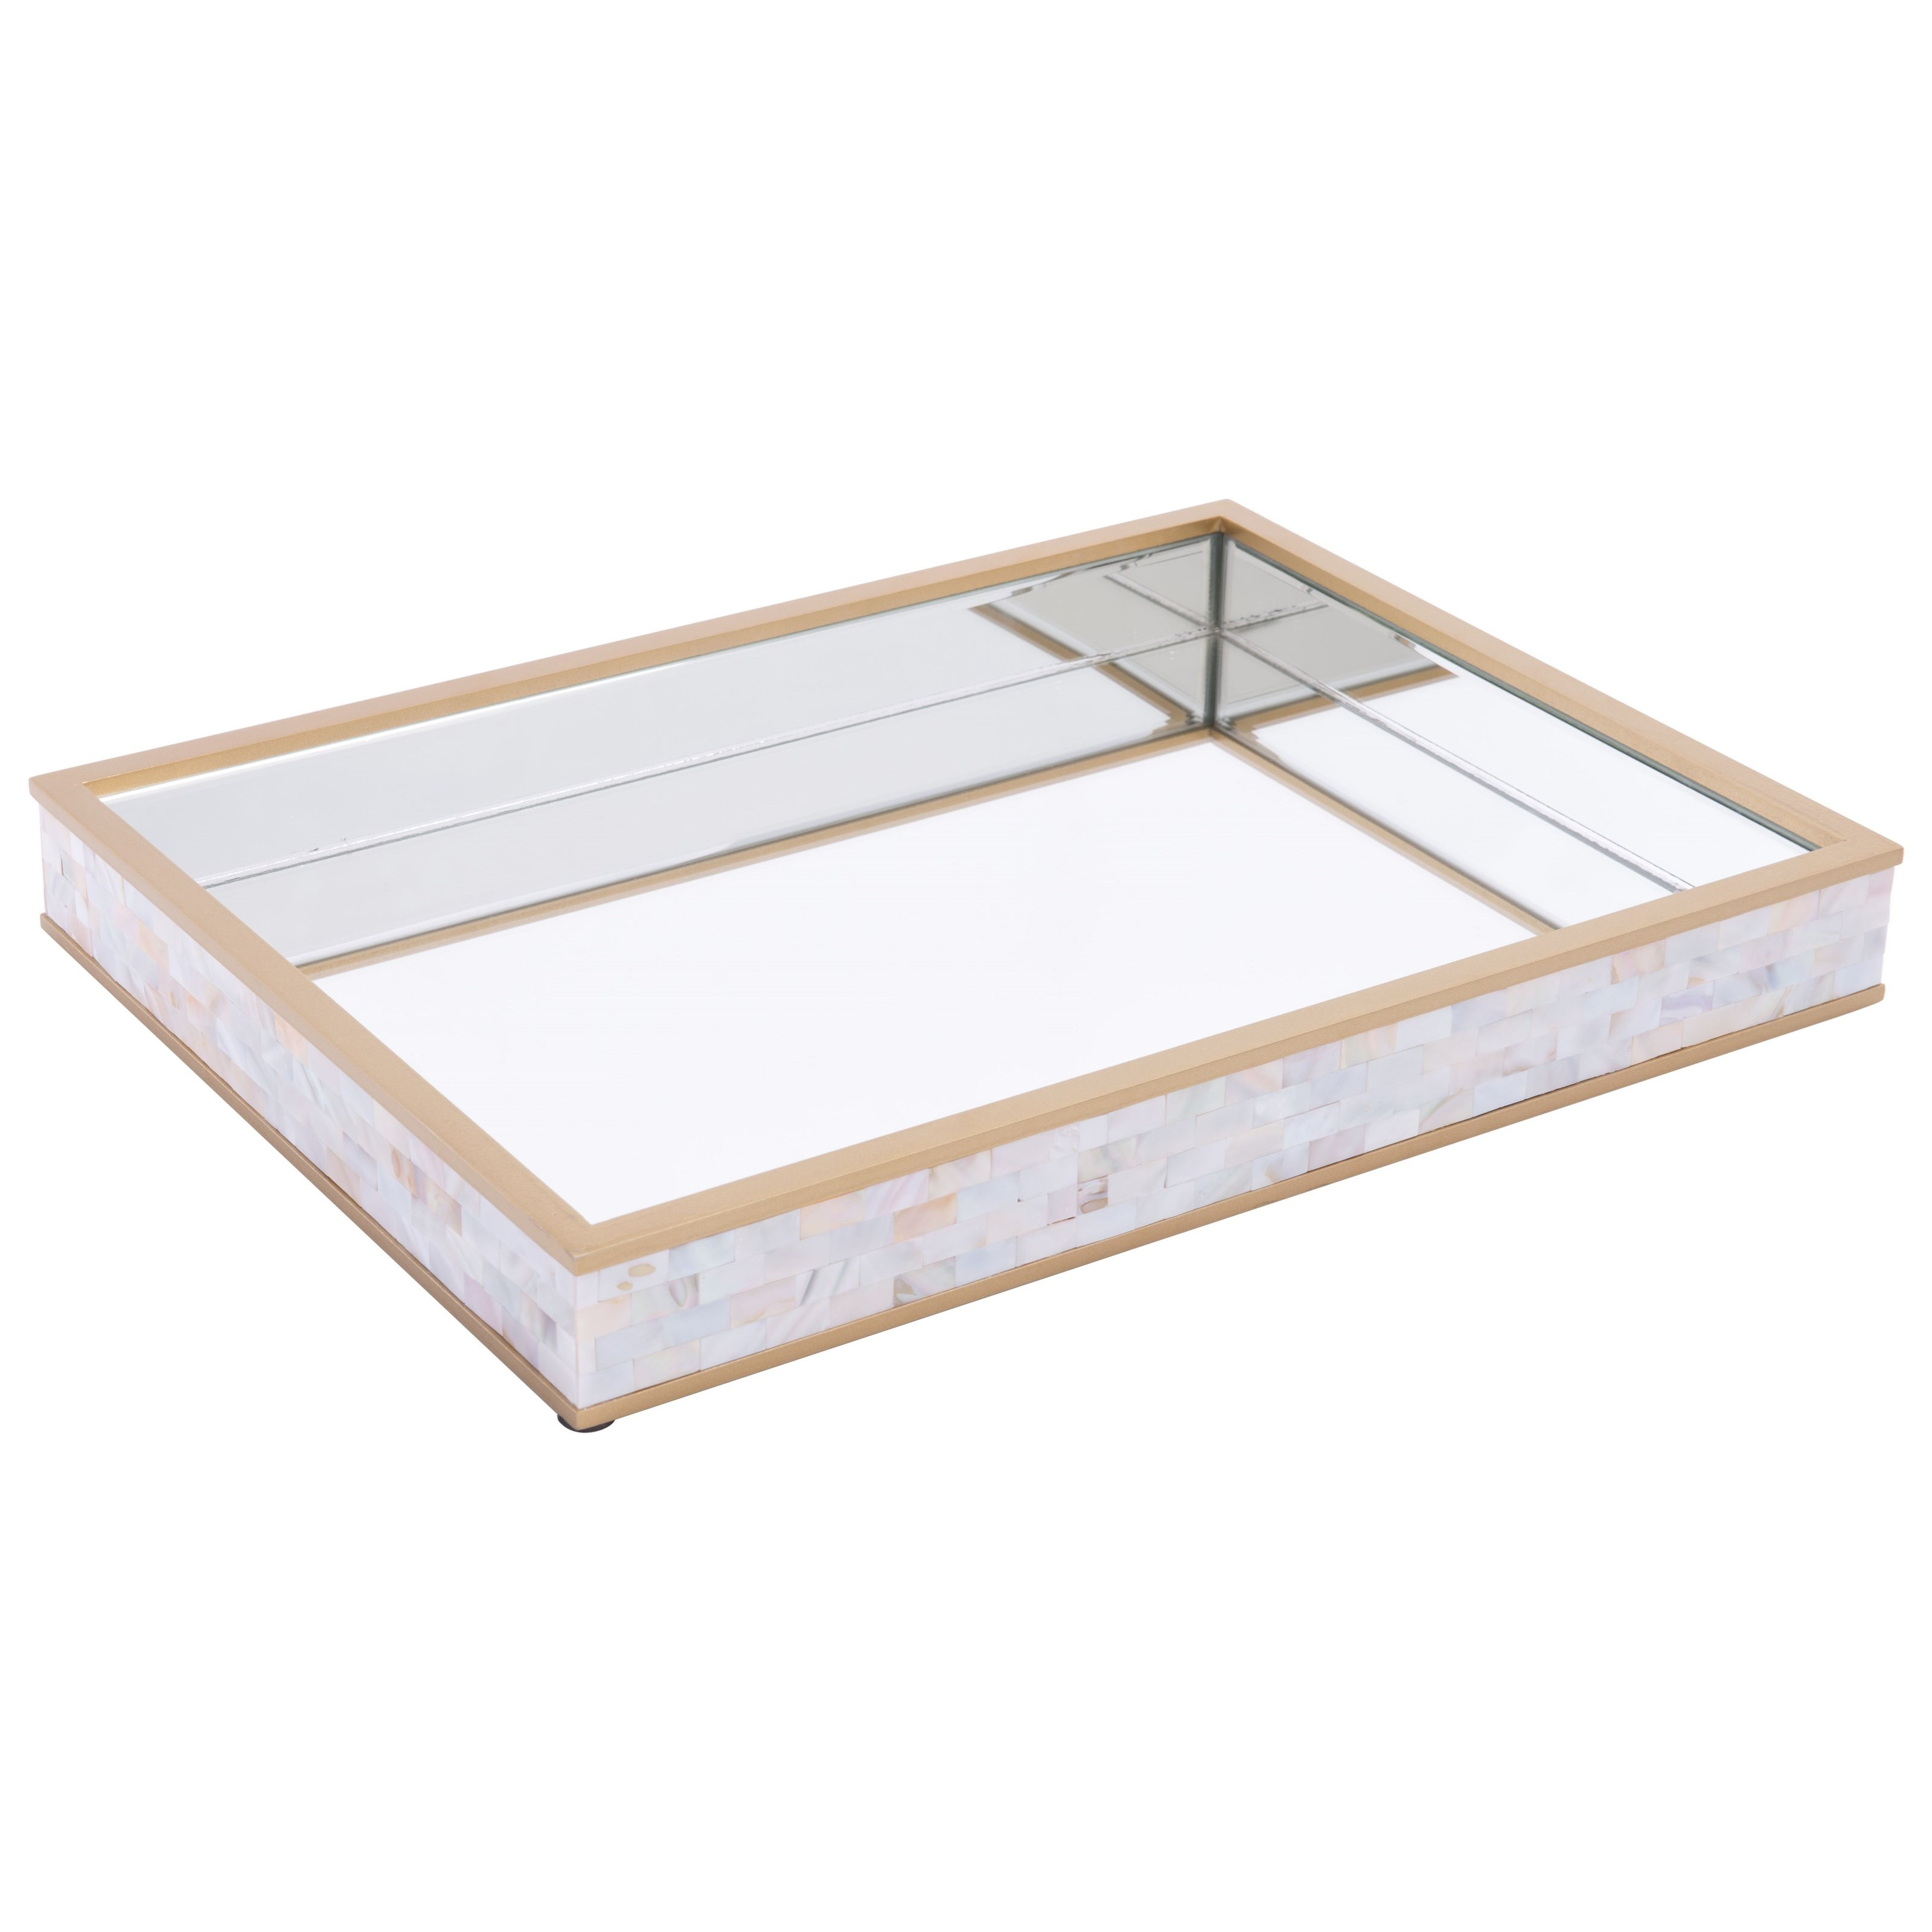 Zuo Boxes, Bowls and Trays Mop Tray - Item Number: A10426